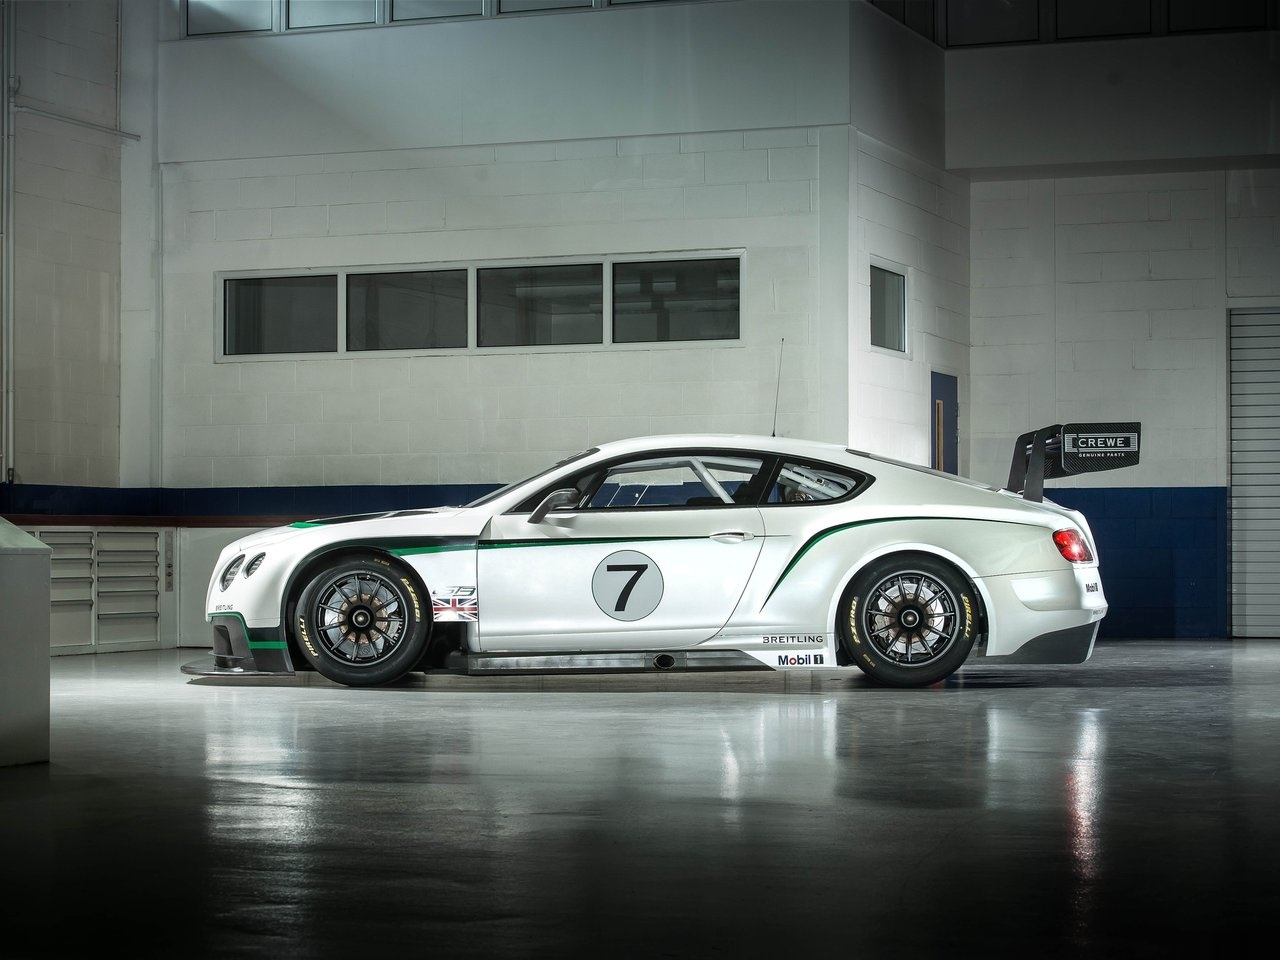 2019 Bentley Continental GT3 Racecar photo - 2